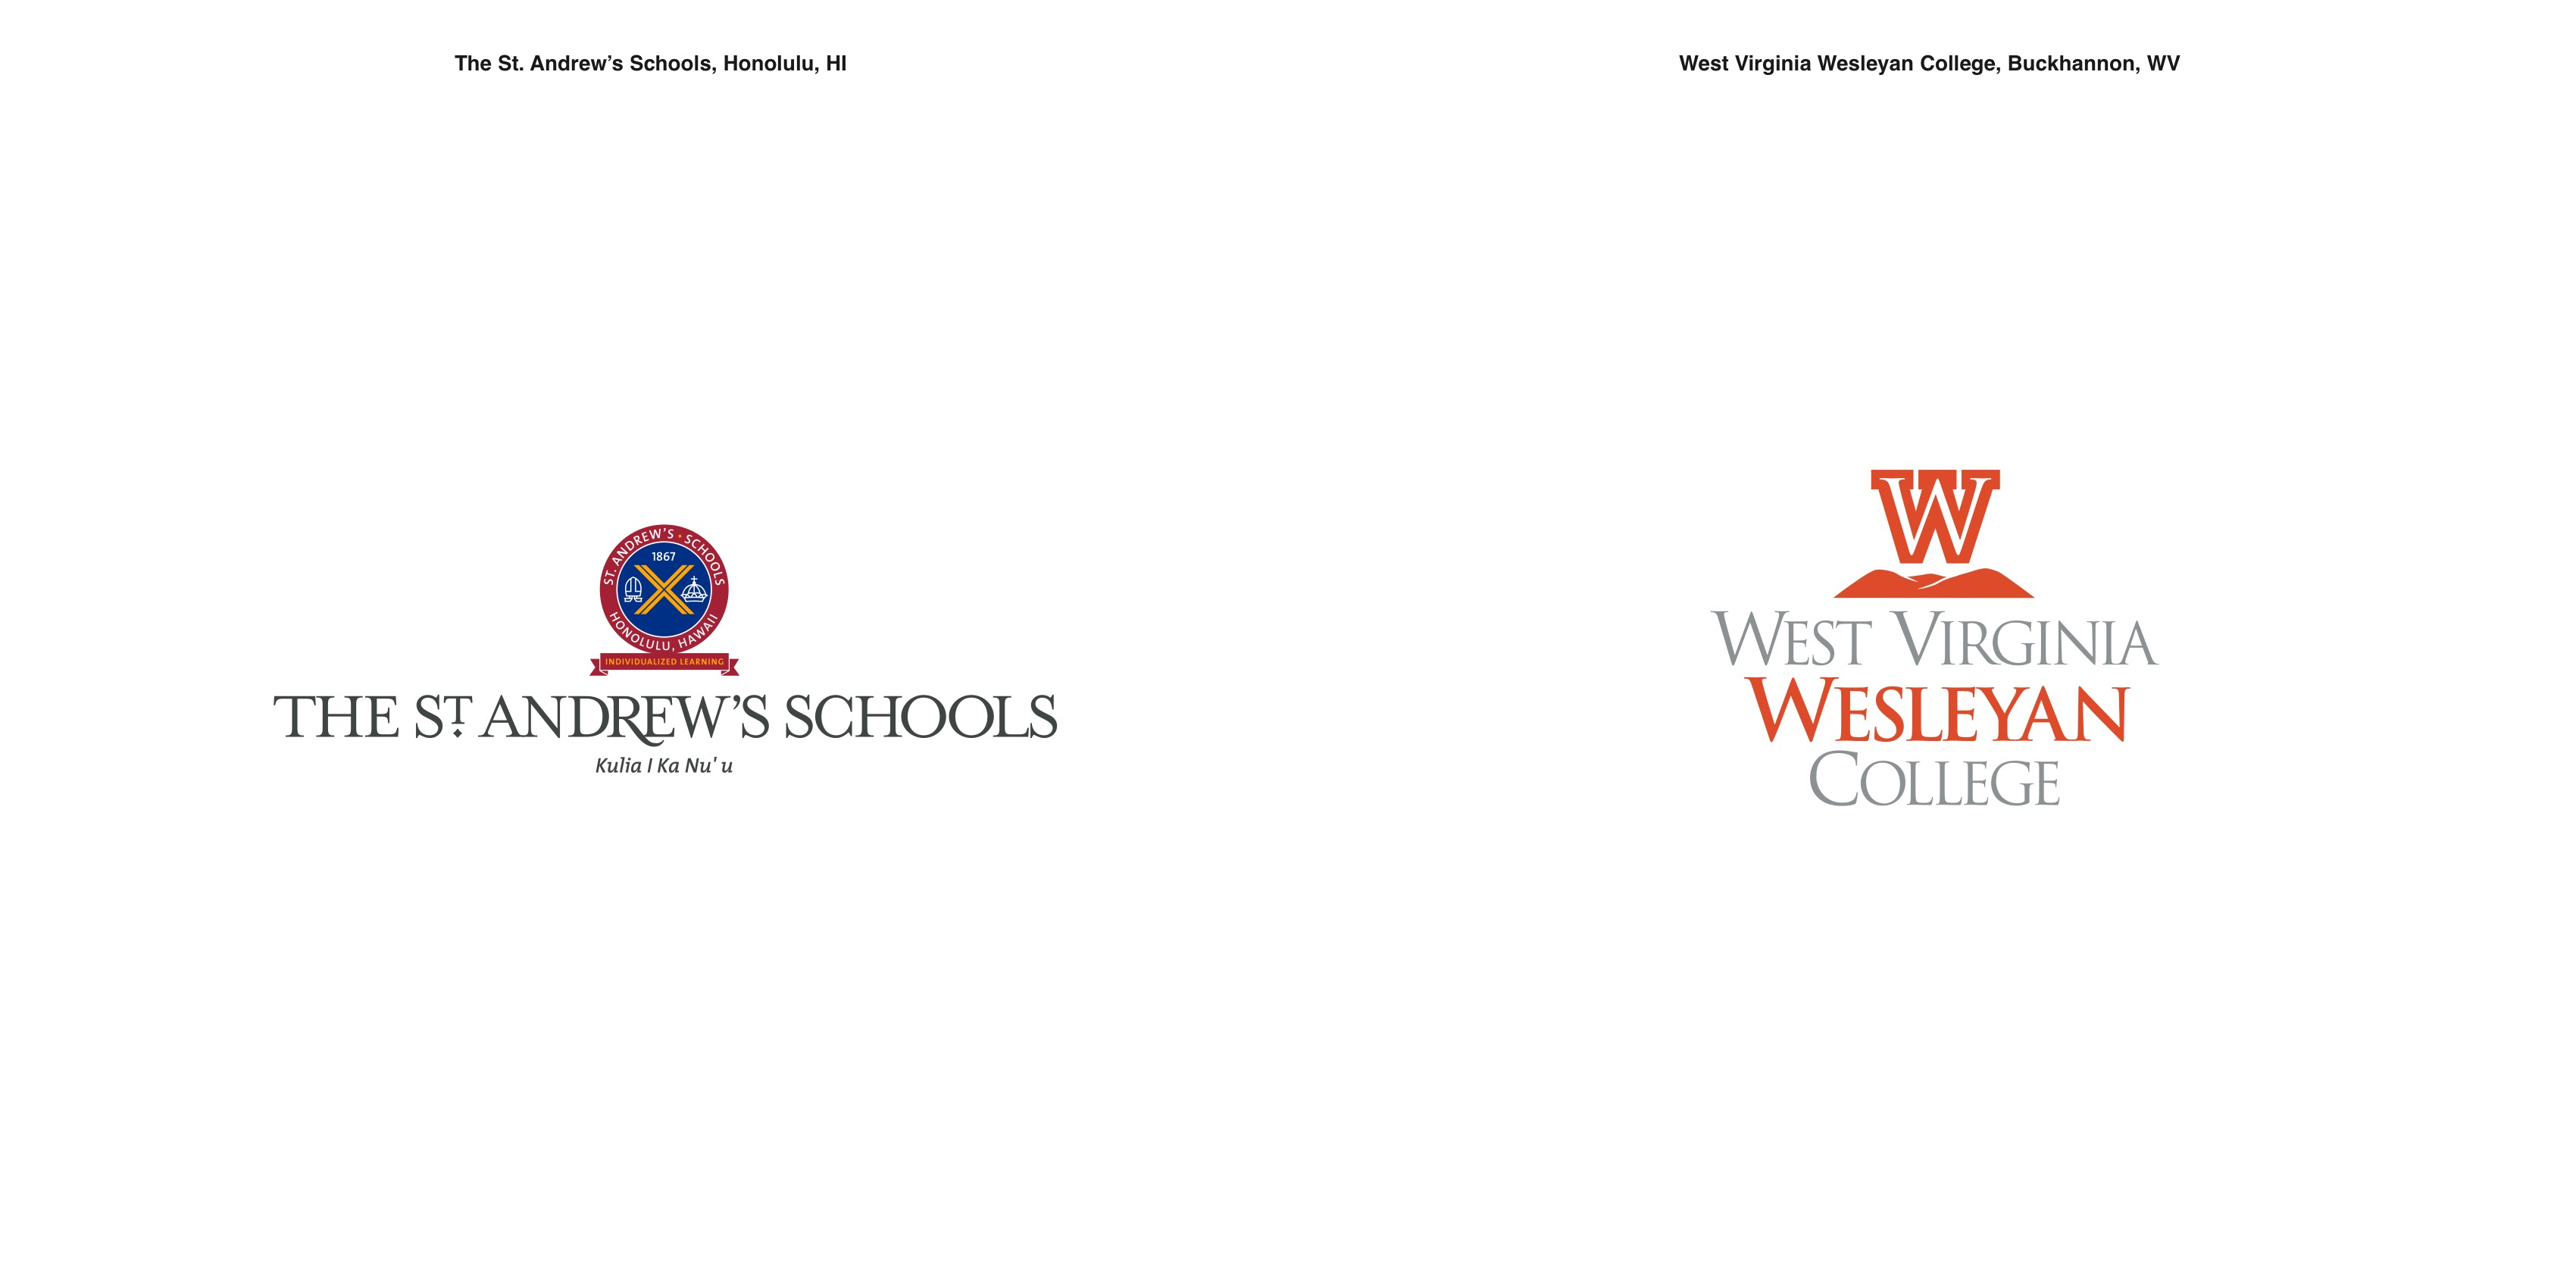 Wv design studio - Click On The Image Below To Flip Through Our Graphic Identity Booklet